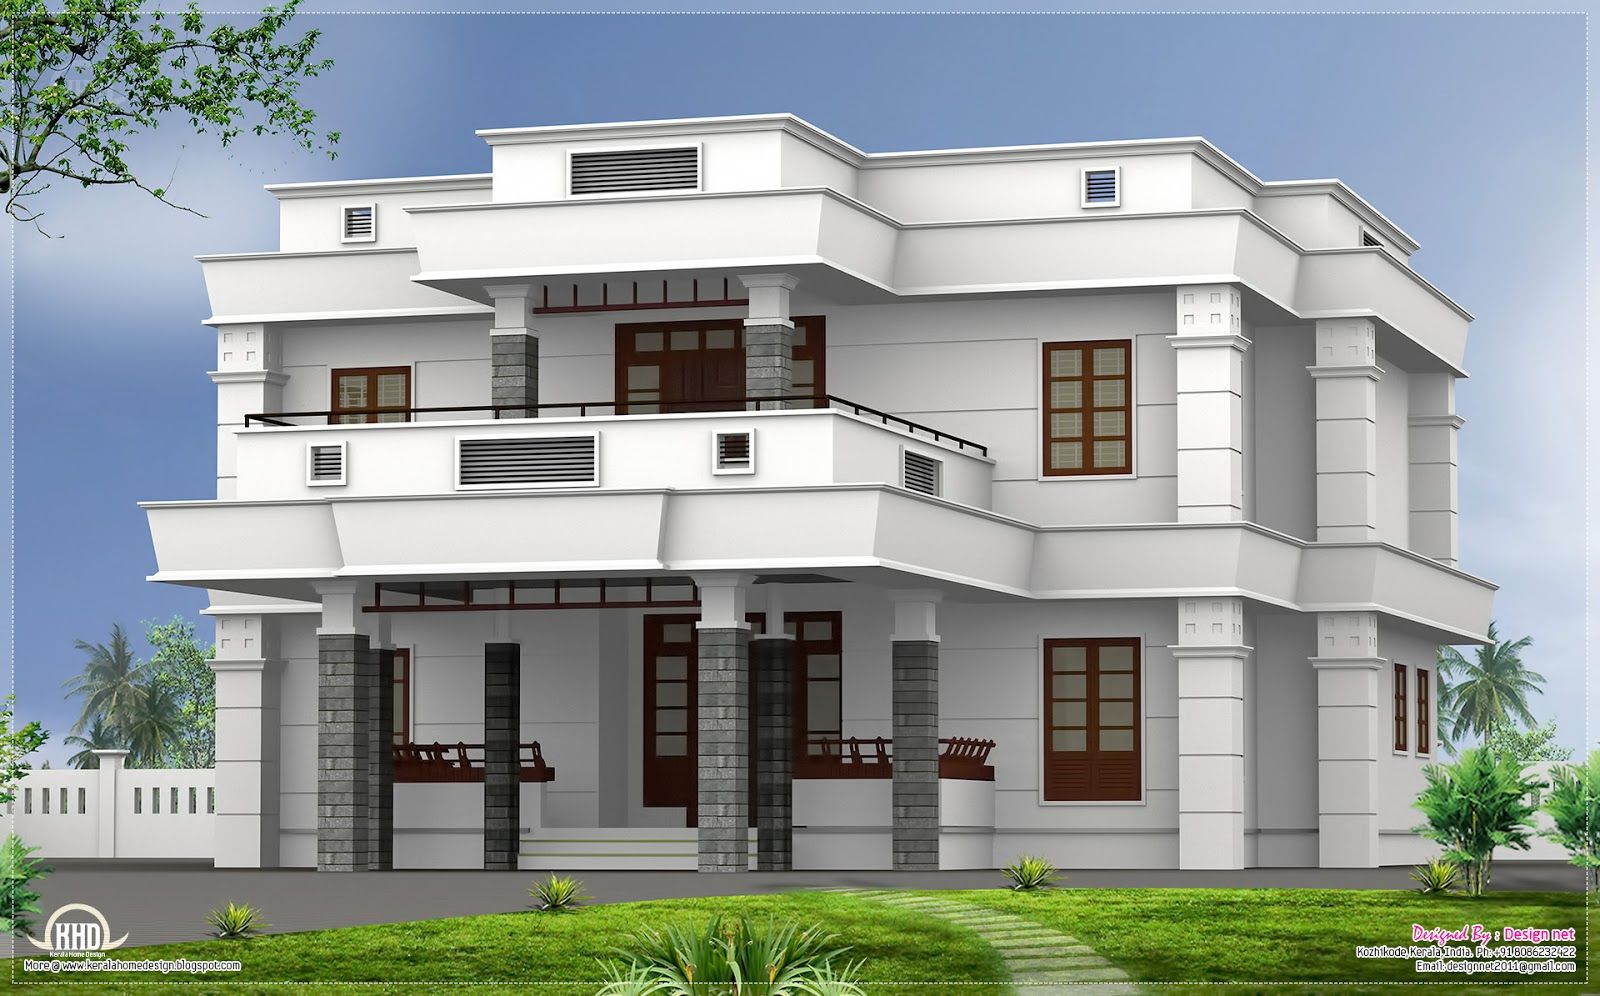 Flat roof homes designs bhk modern flat roof house for Window design elevation